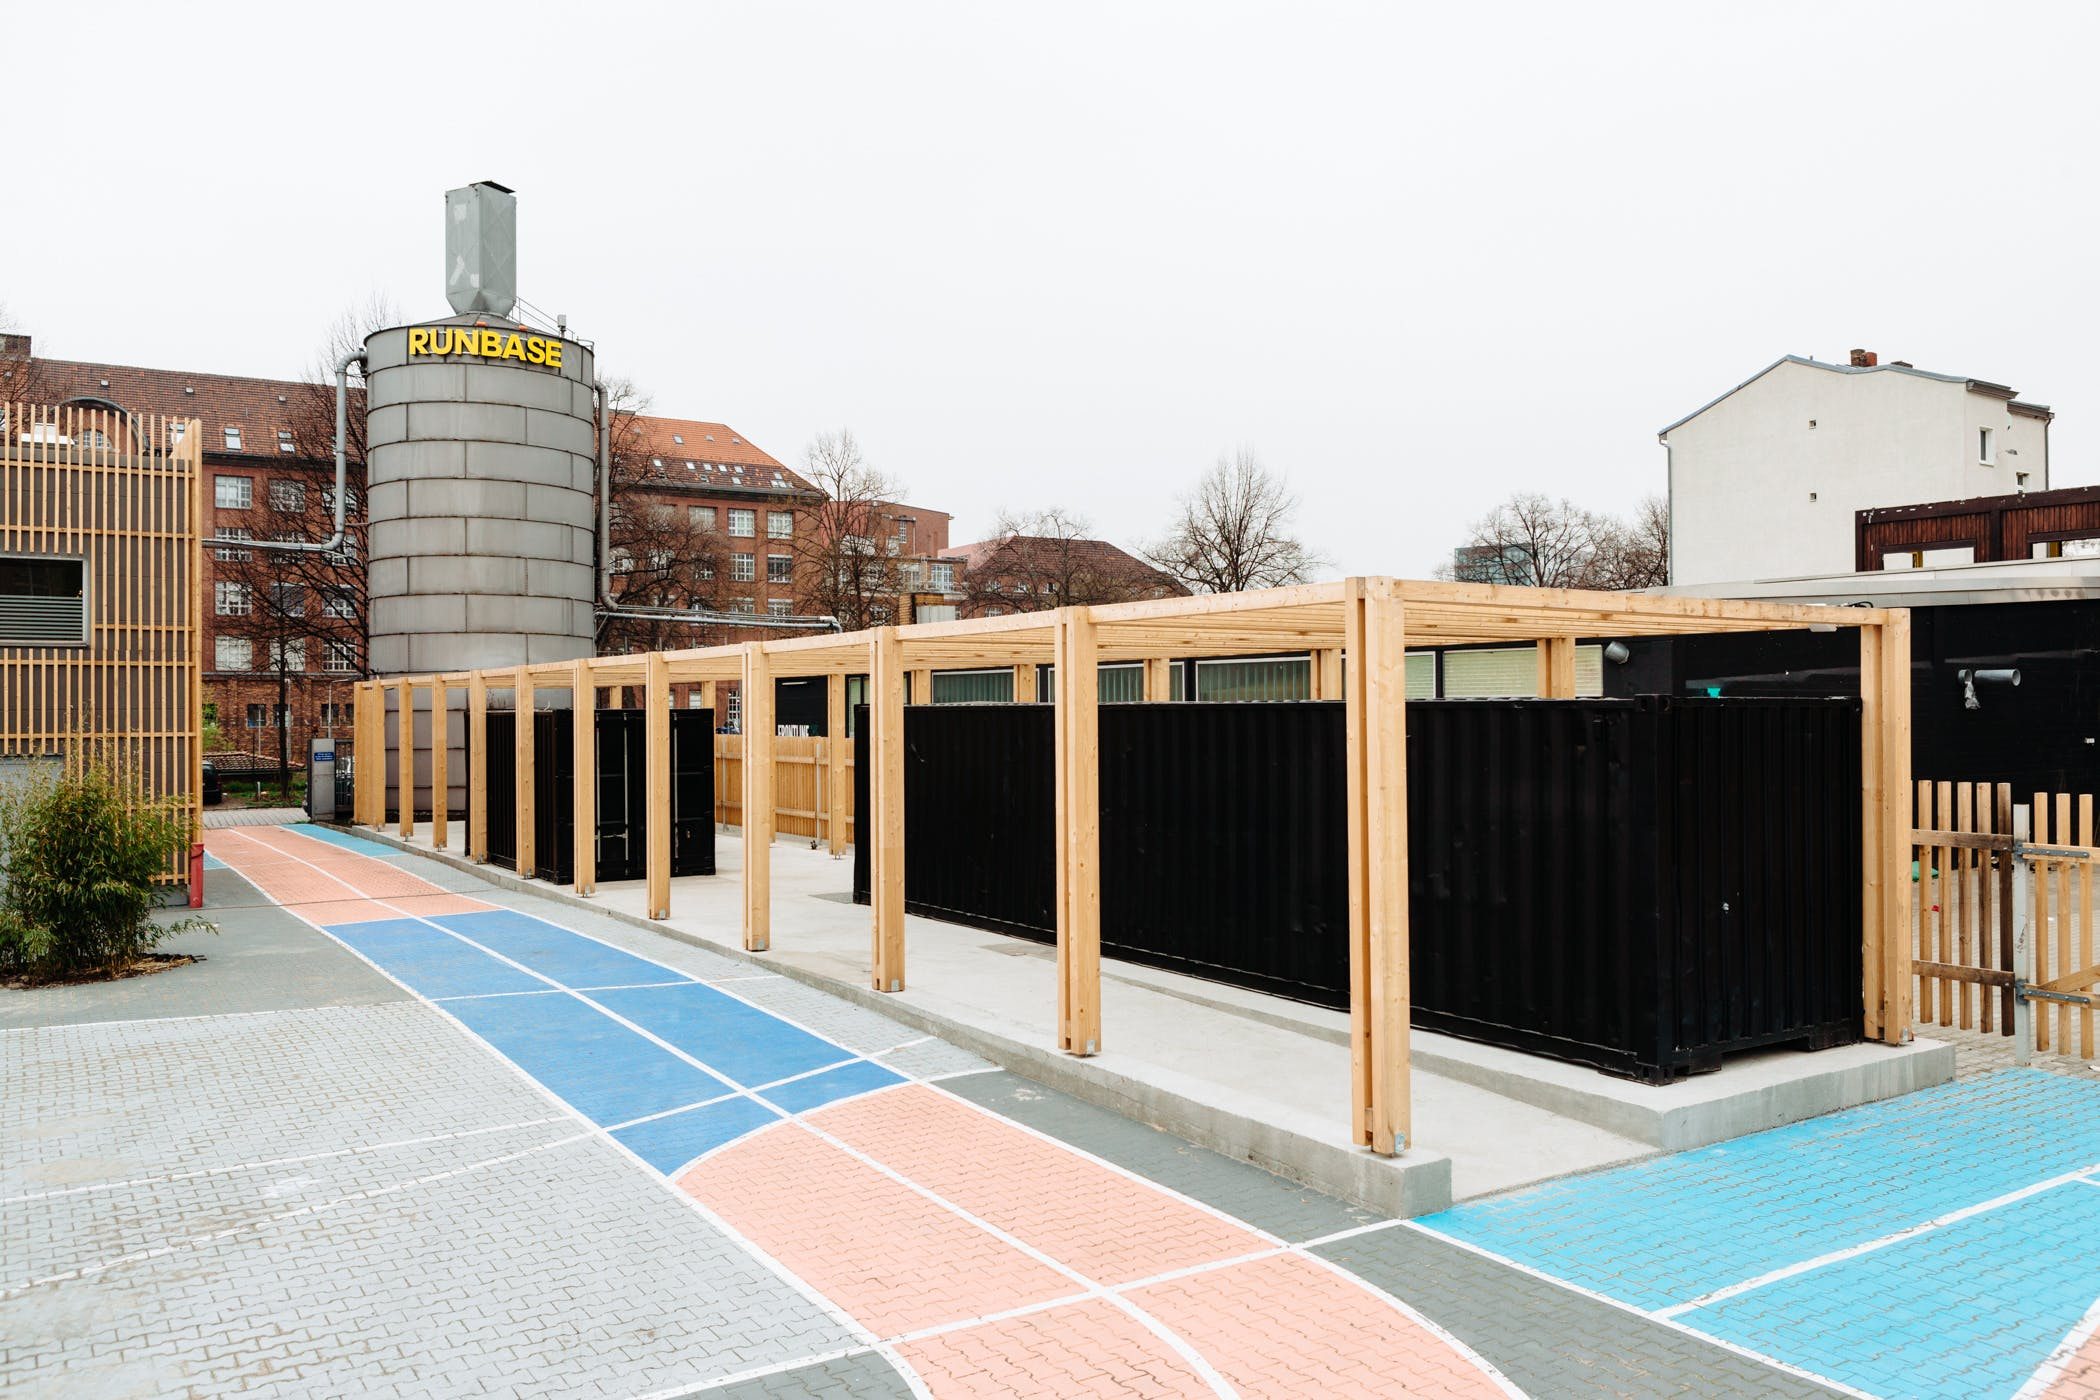 pop-up shop made of shipping containers